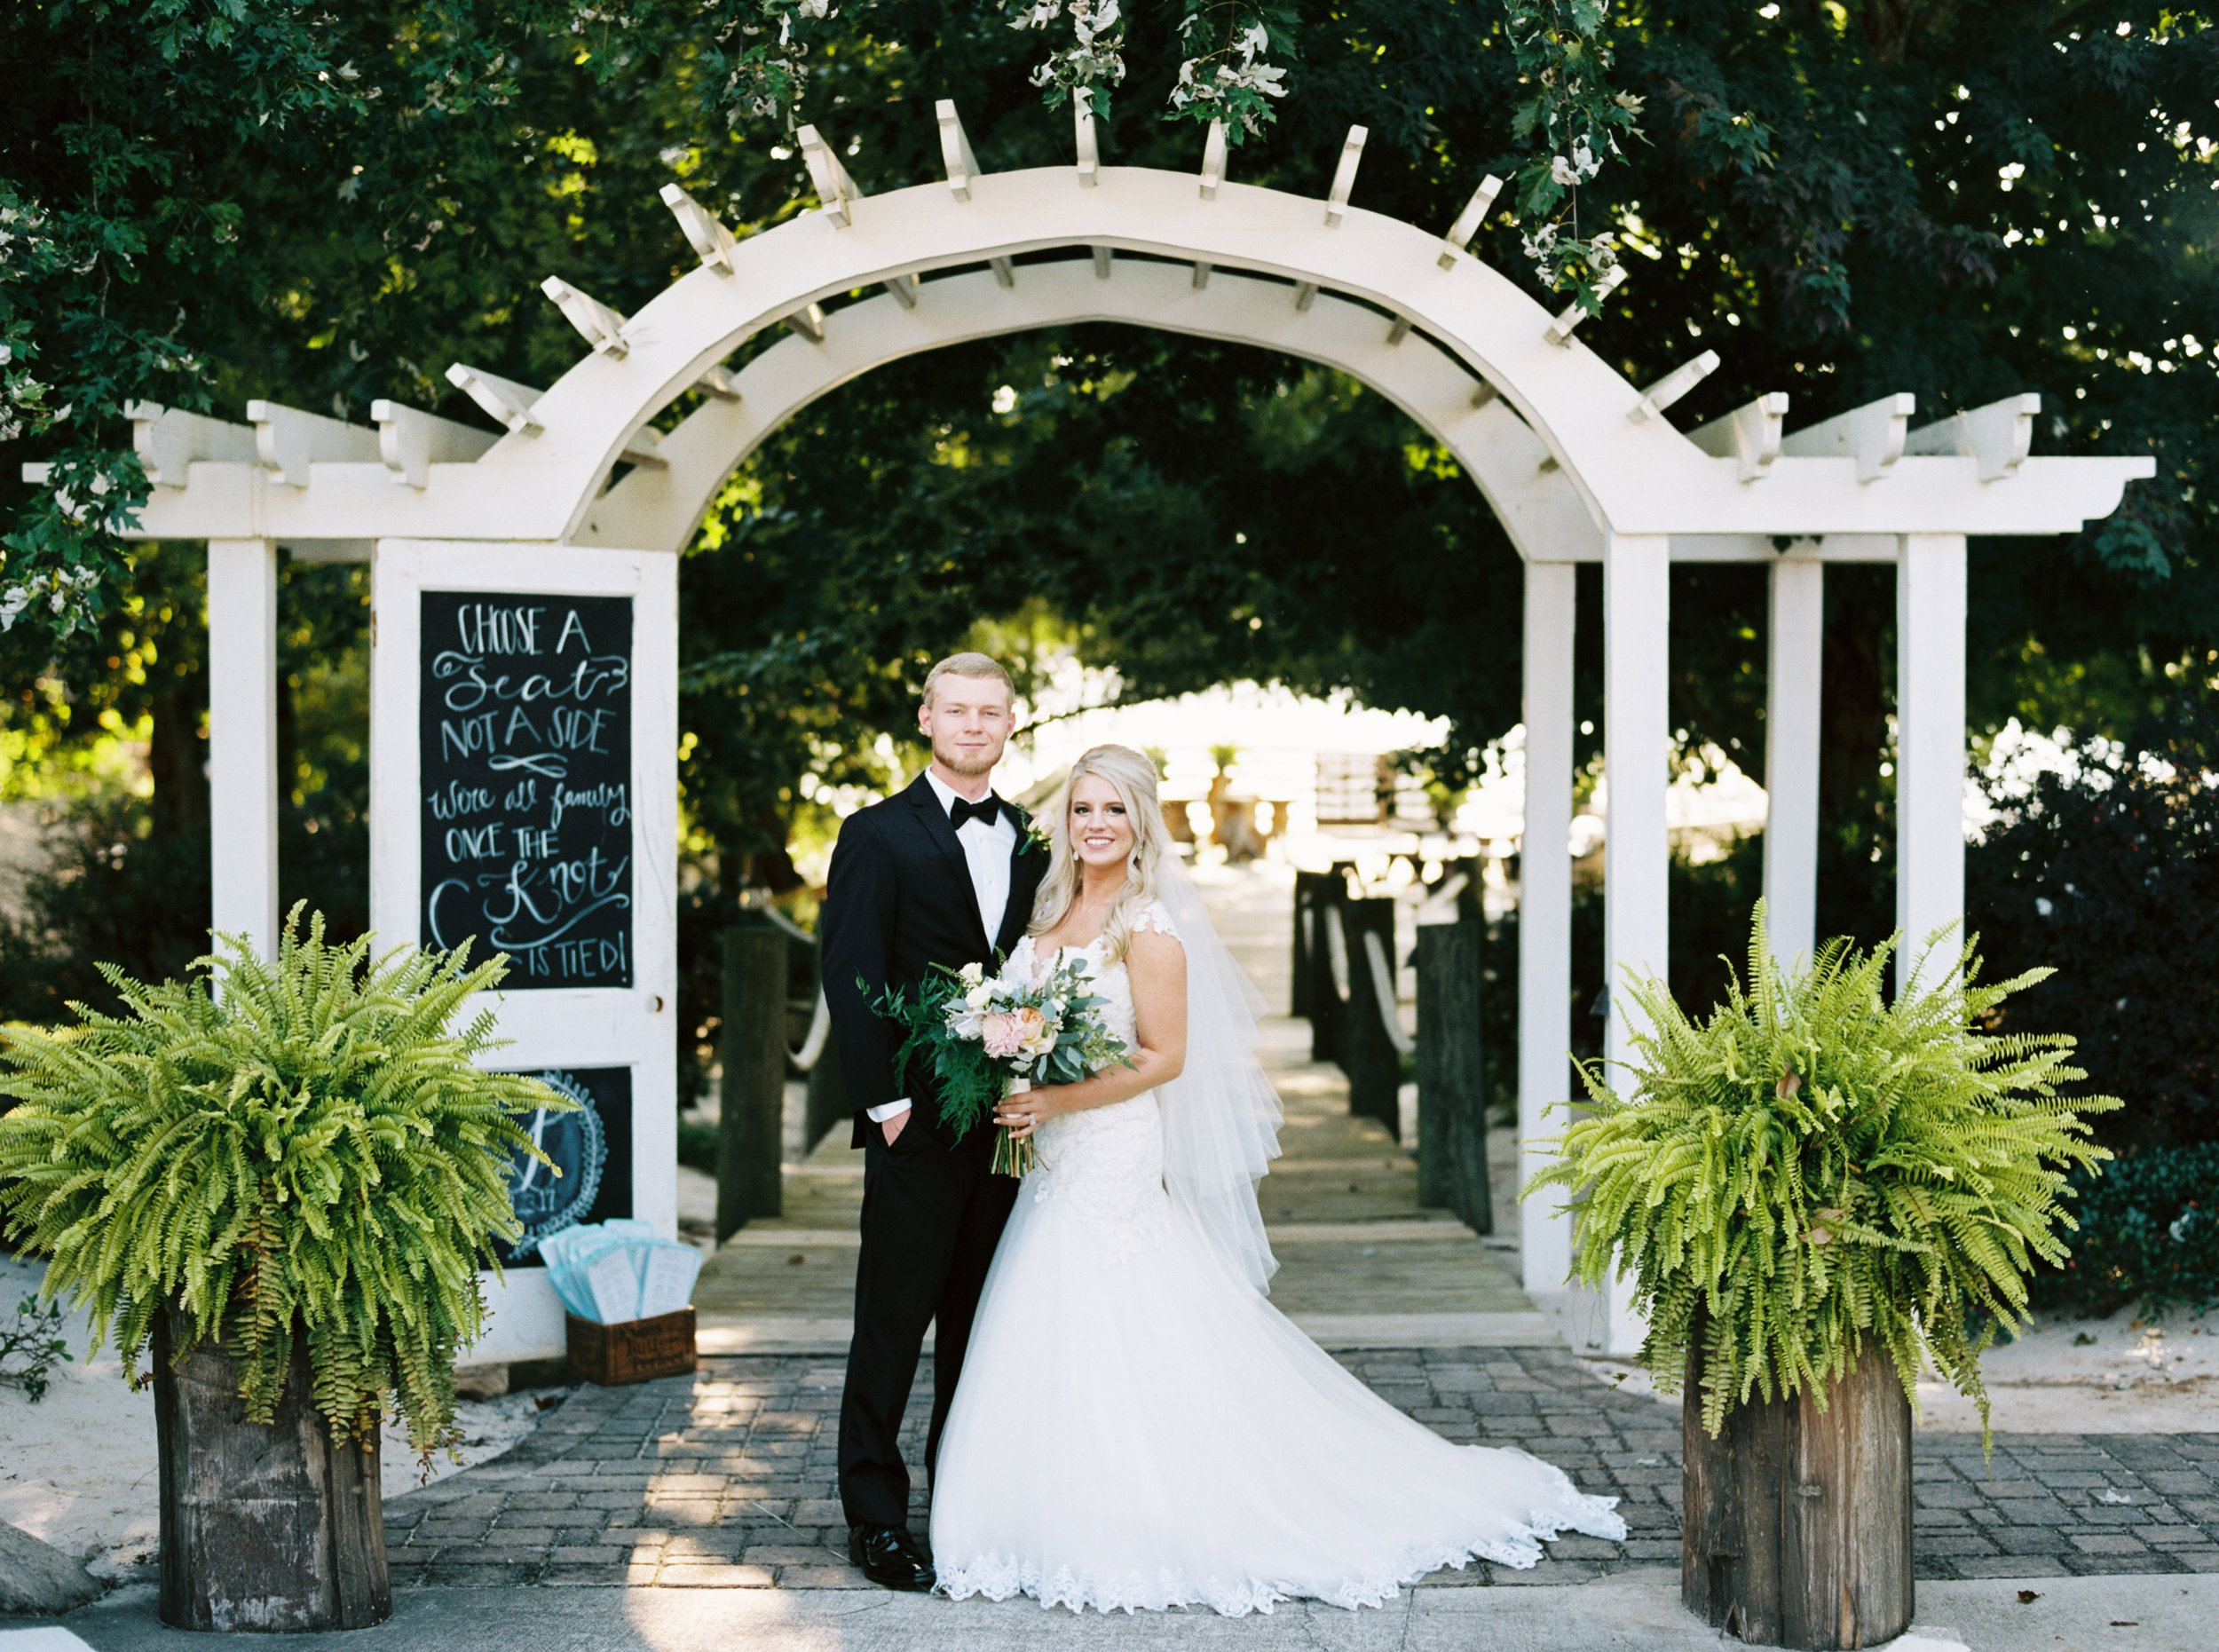 Knoxville Wedding Venue — The Overwhelmed Bride Wedding Blog